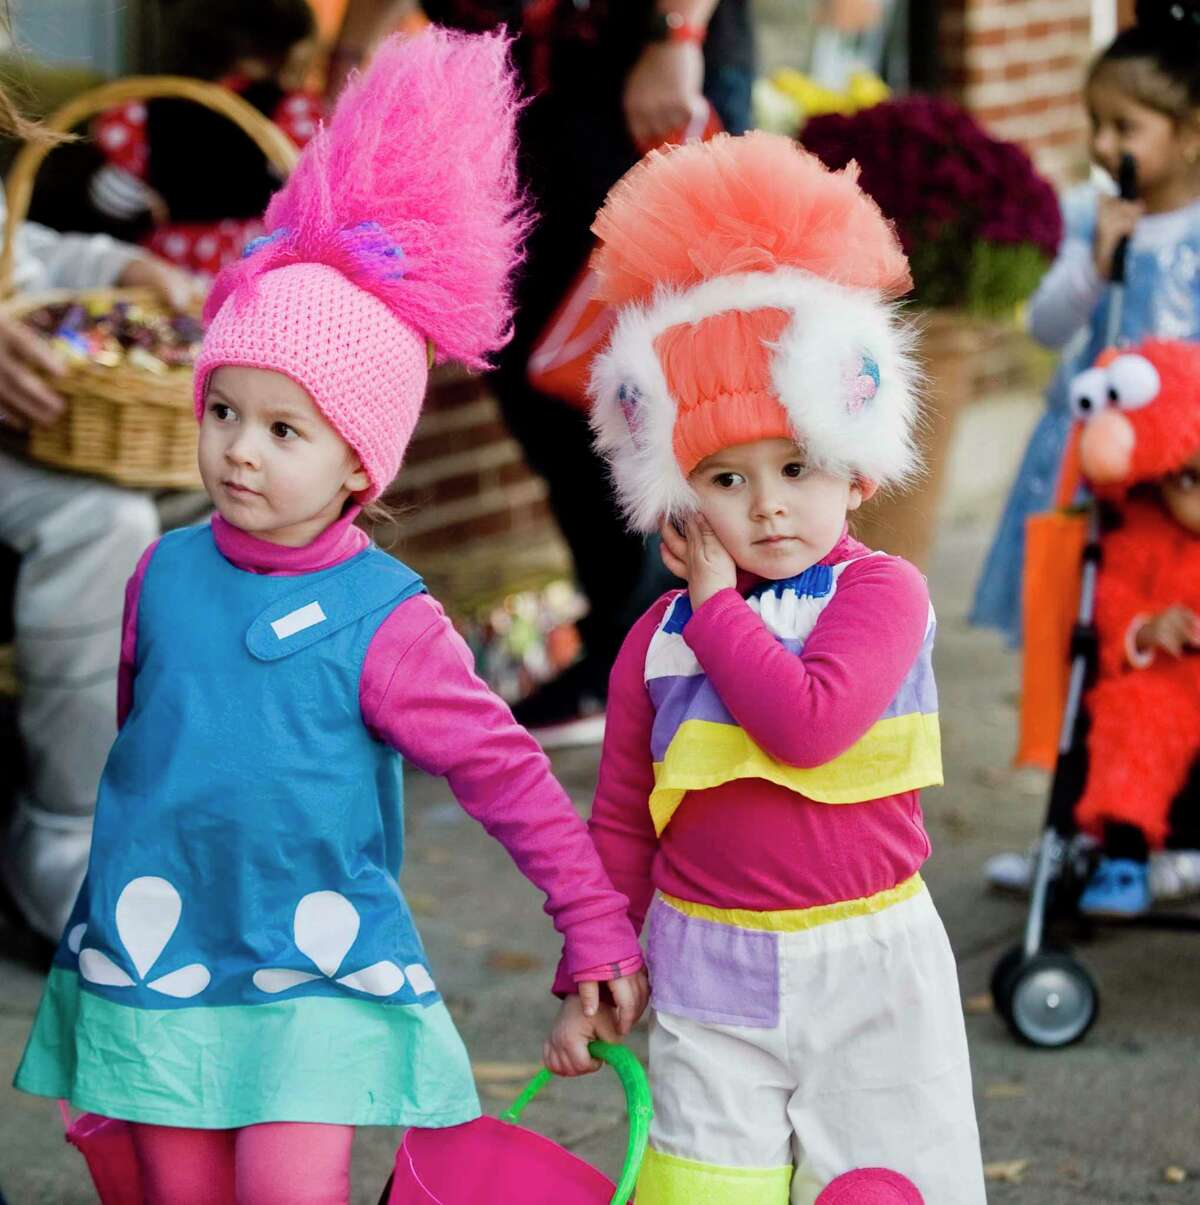 Twins Piper and Penelope Howatt, 3, search for candy on Main Street.